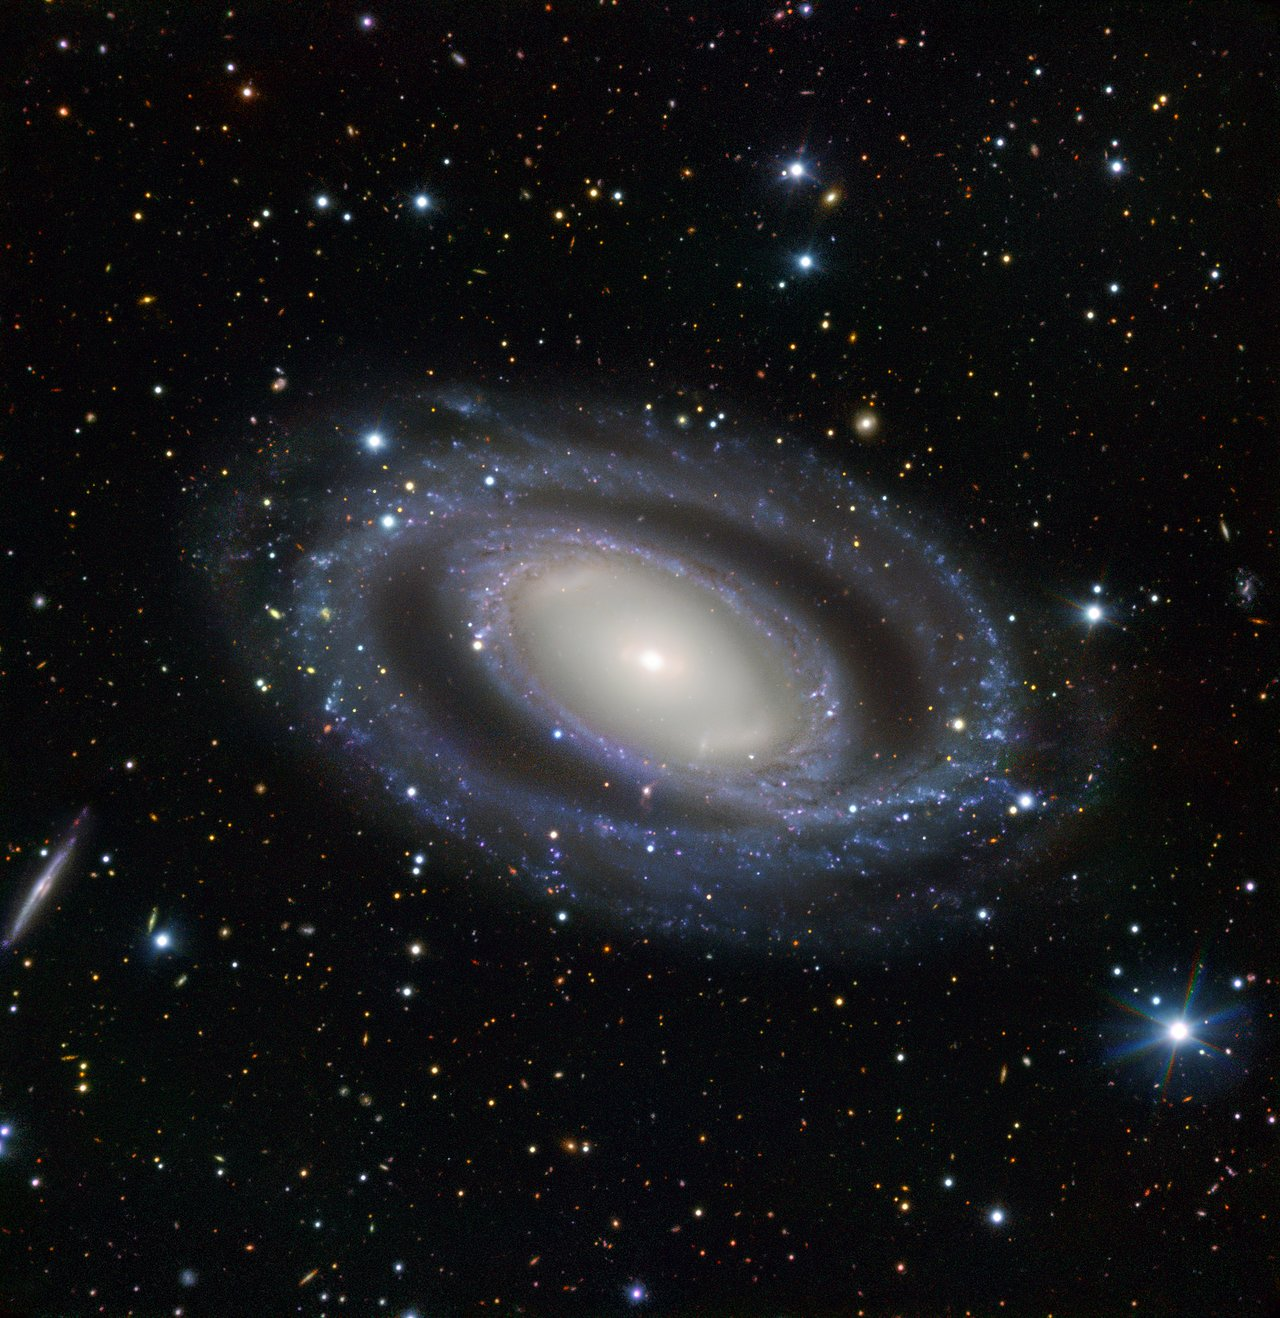 The double-wound spiral galaxy NGC 7098.